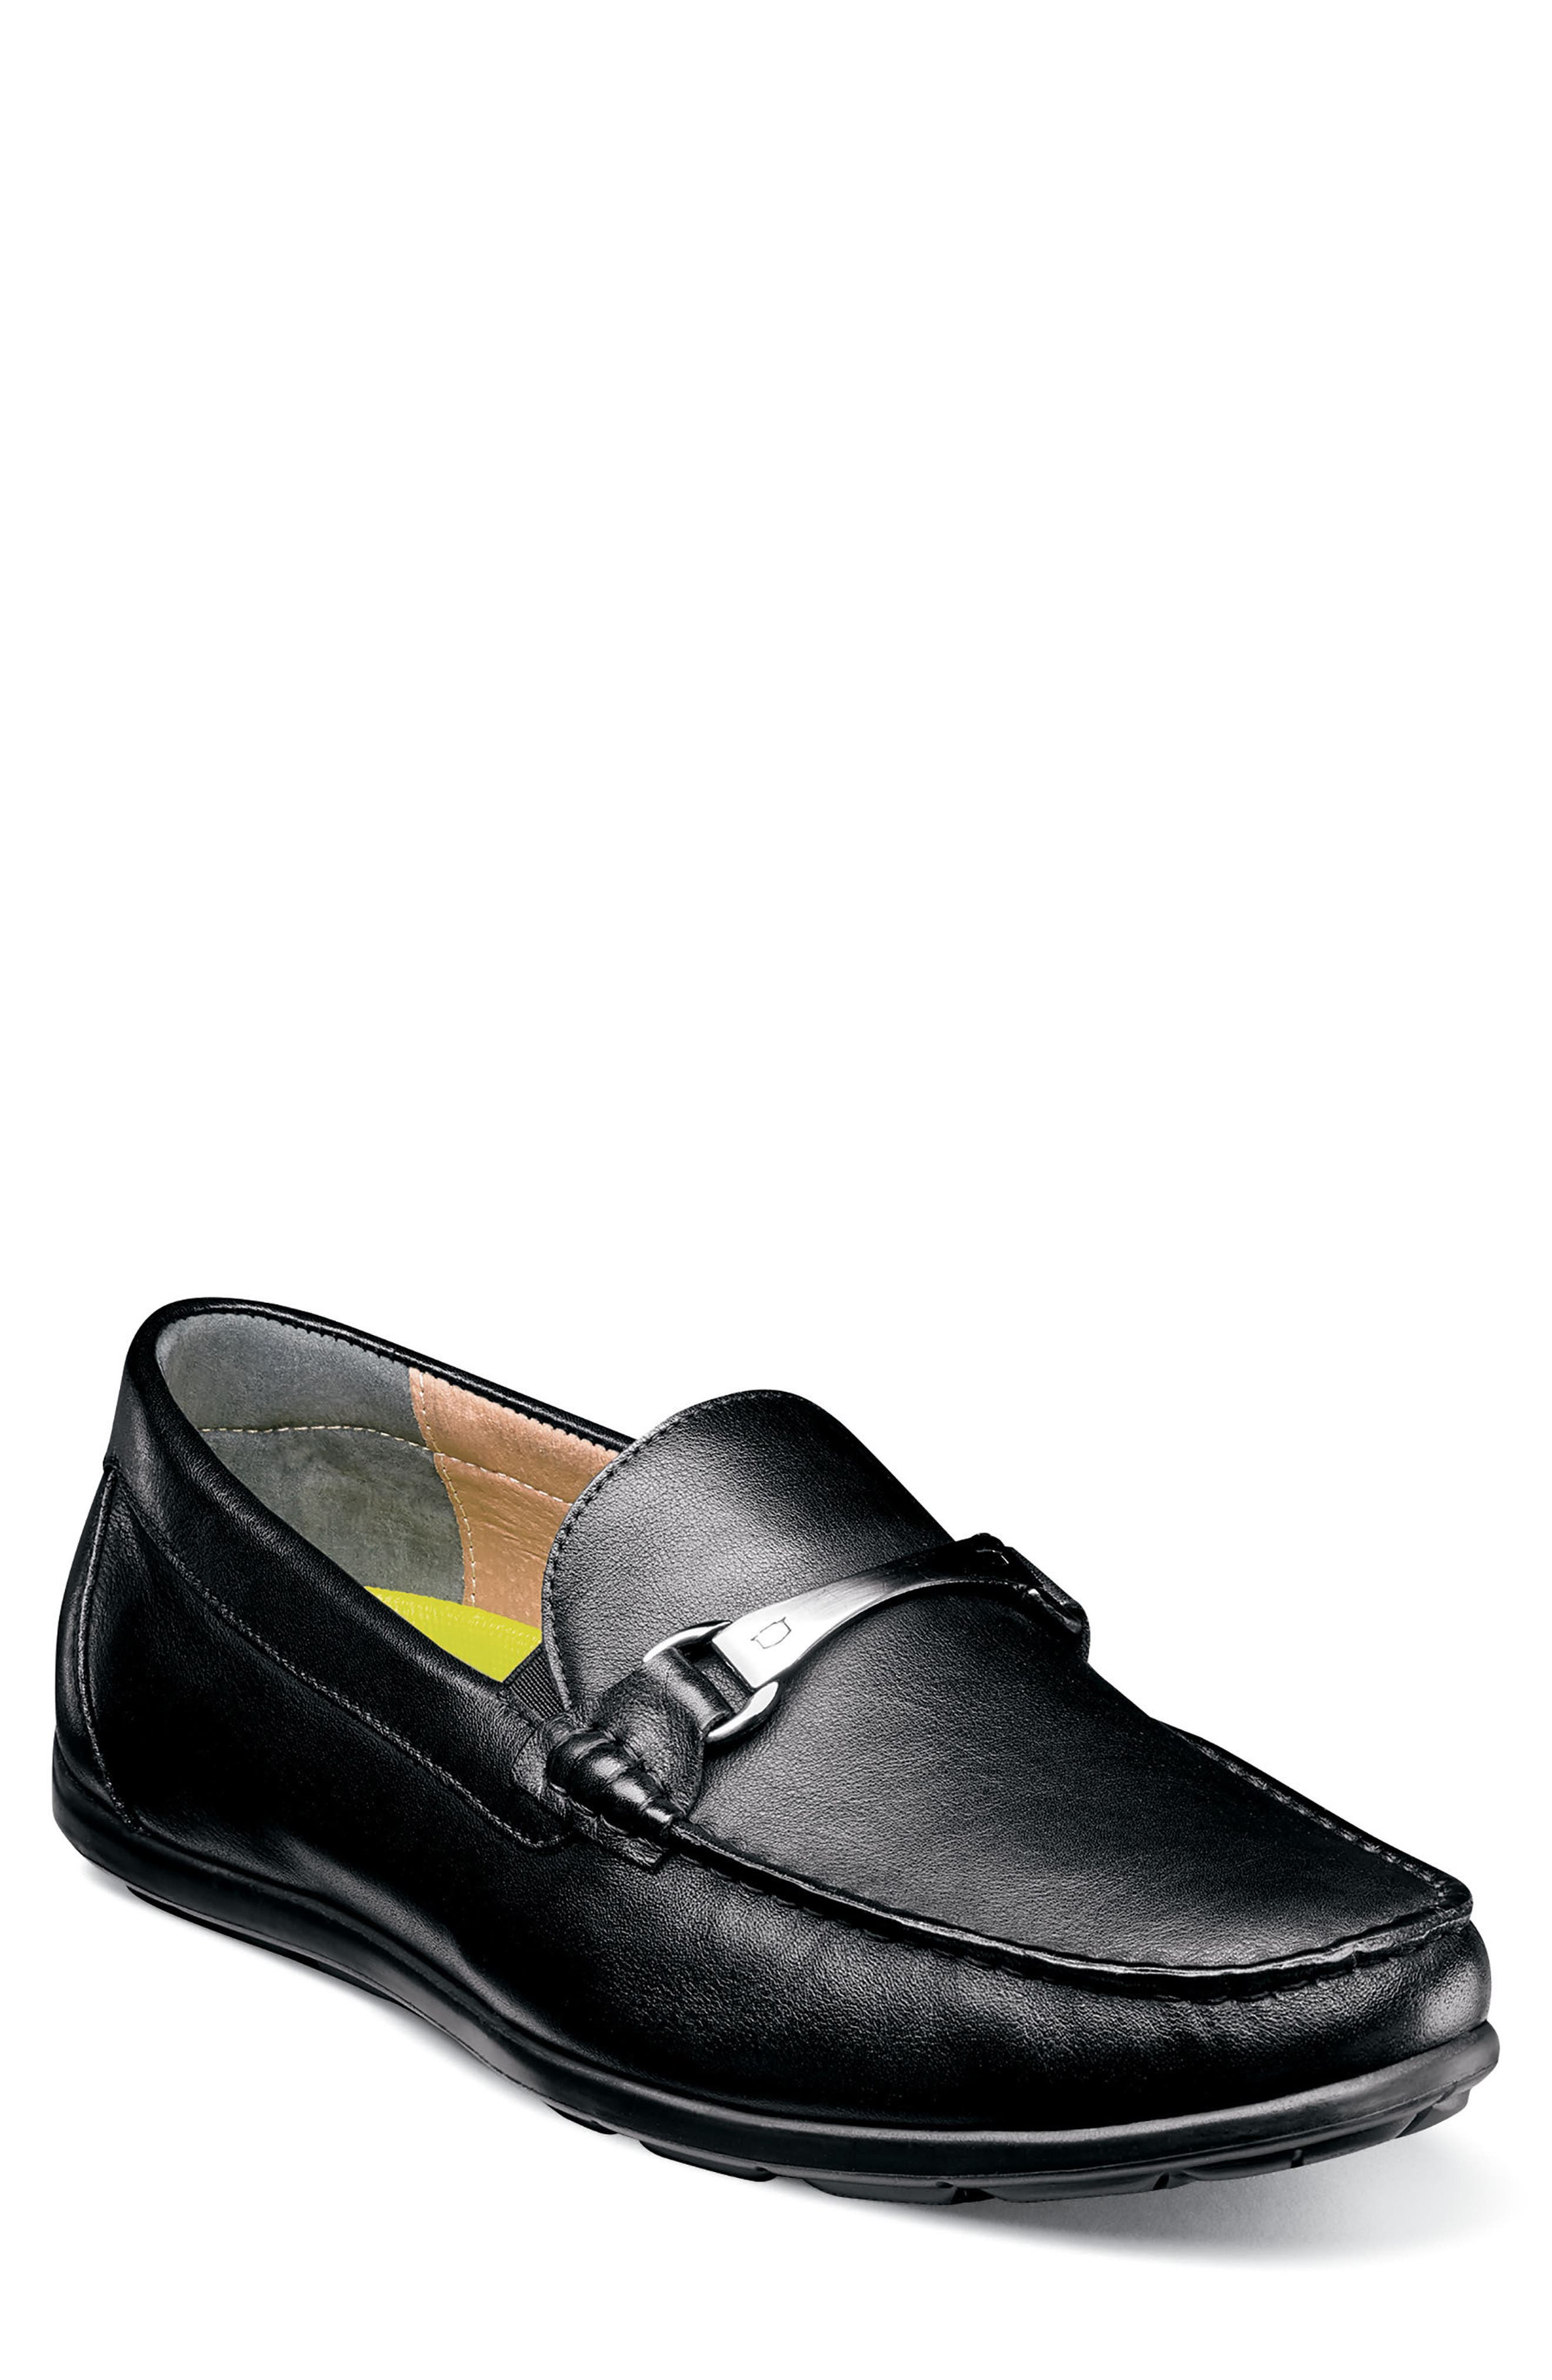 Comfortech Bit Loafer,                             Main thumbnail 1, color,                             Black Smooth